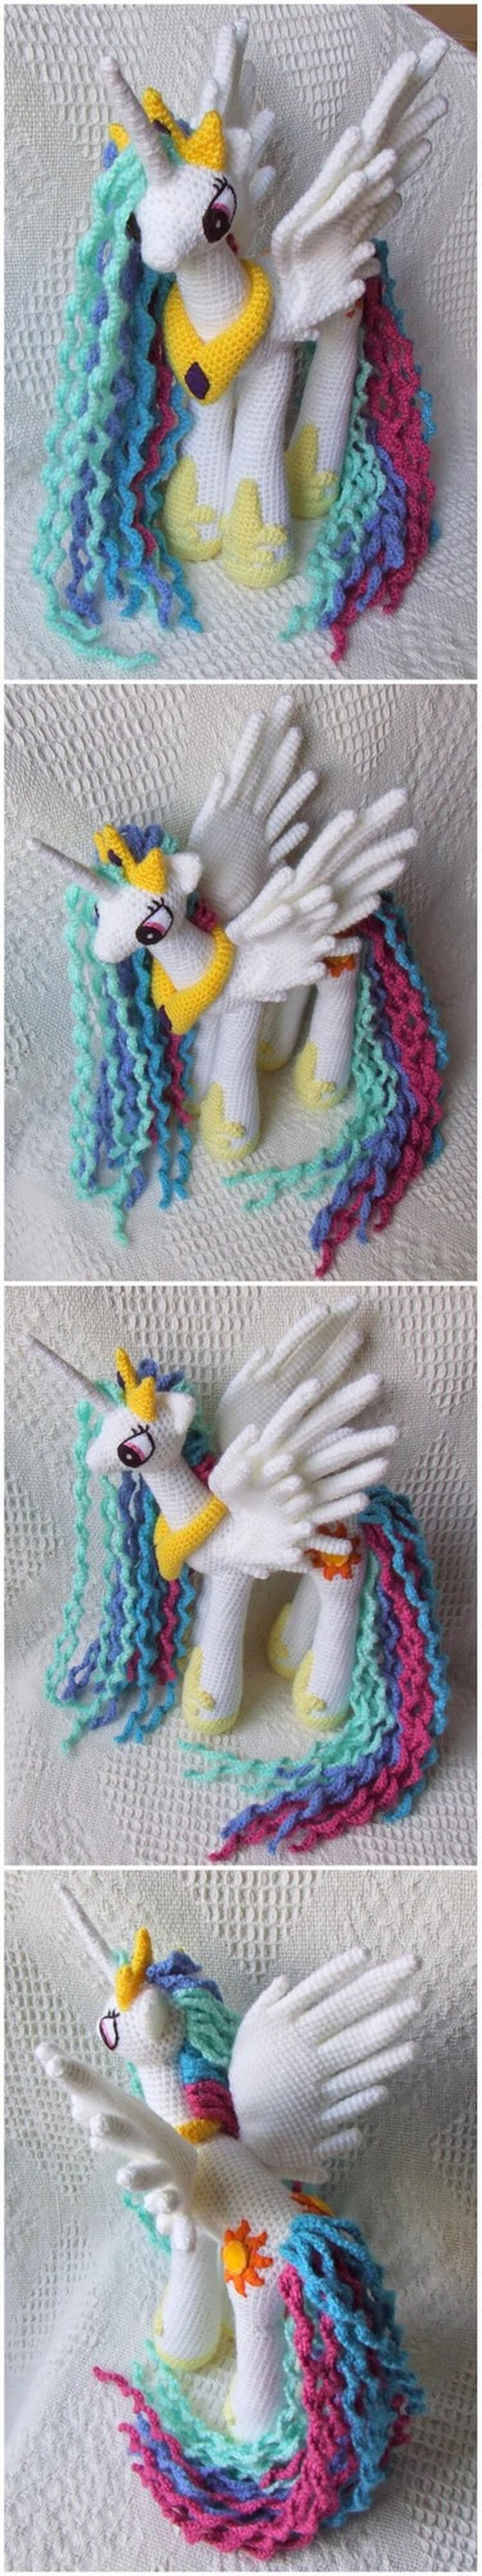 Crochet Unicorn Pattern (36)